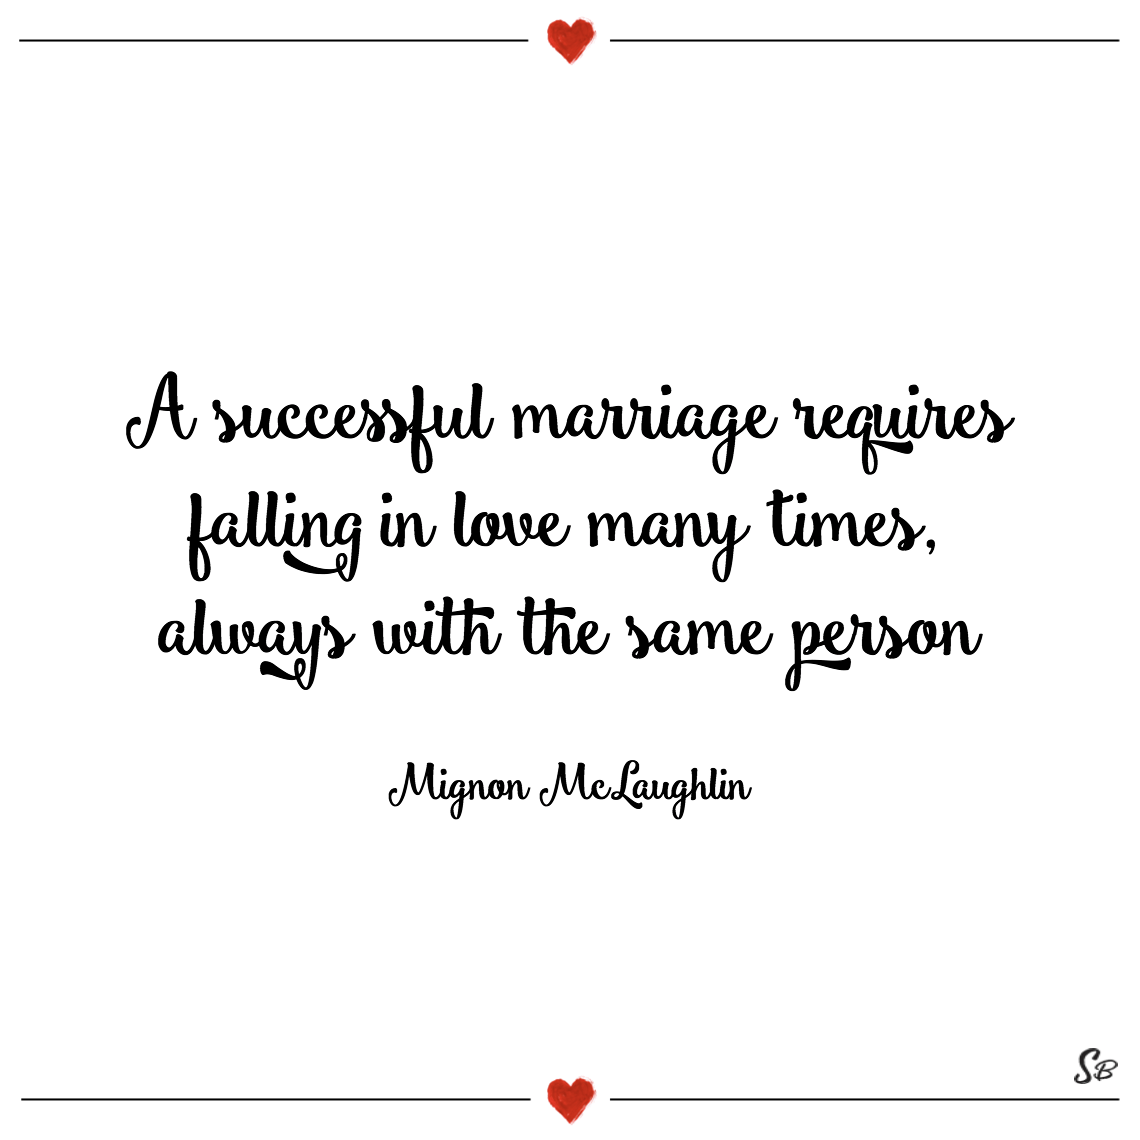 Profound Quotes About Love 31 Beautiful Marriage Quotes About Love And Friendship  Spirit Button